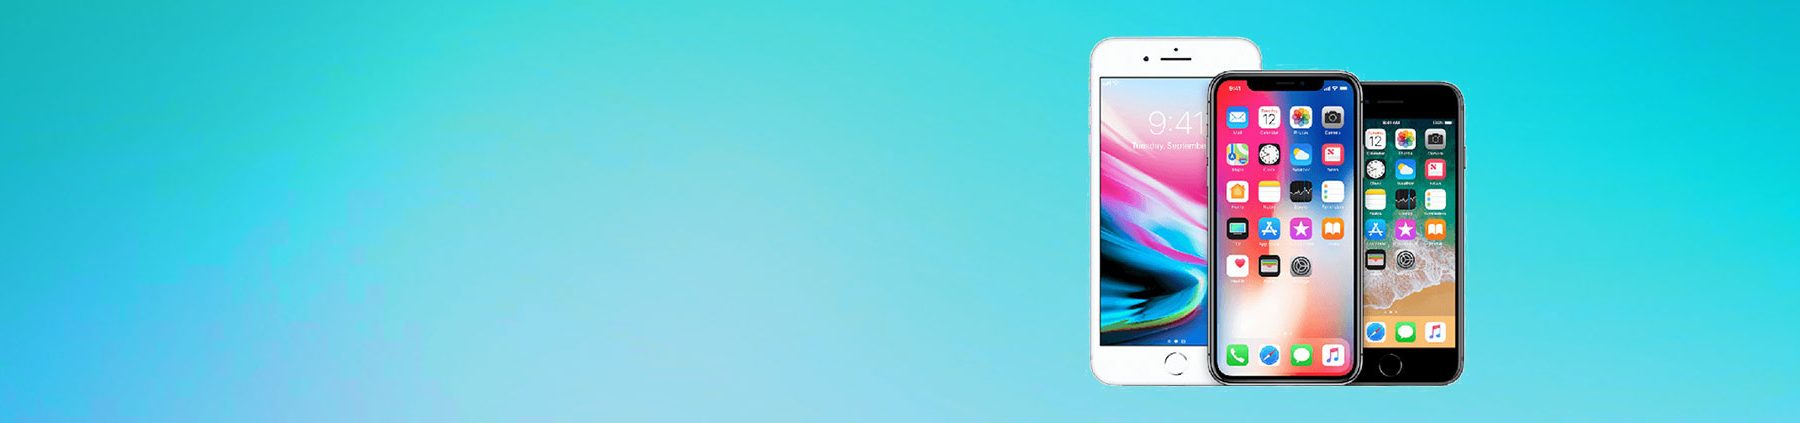 Iphone Category Banner Blue